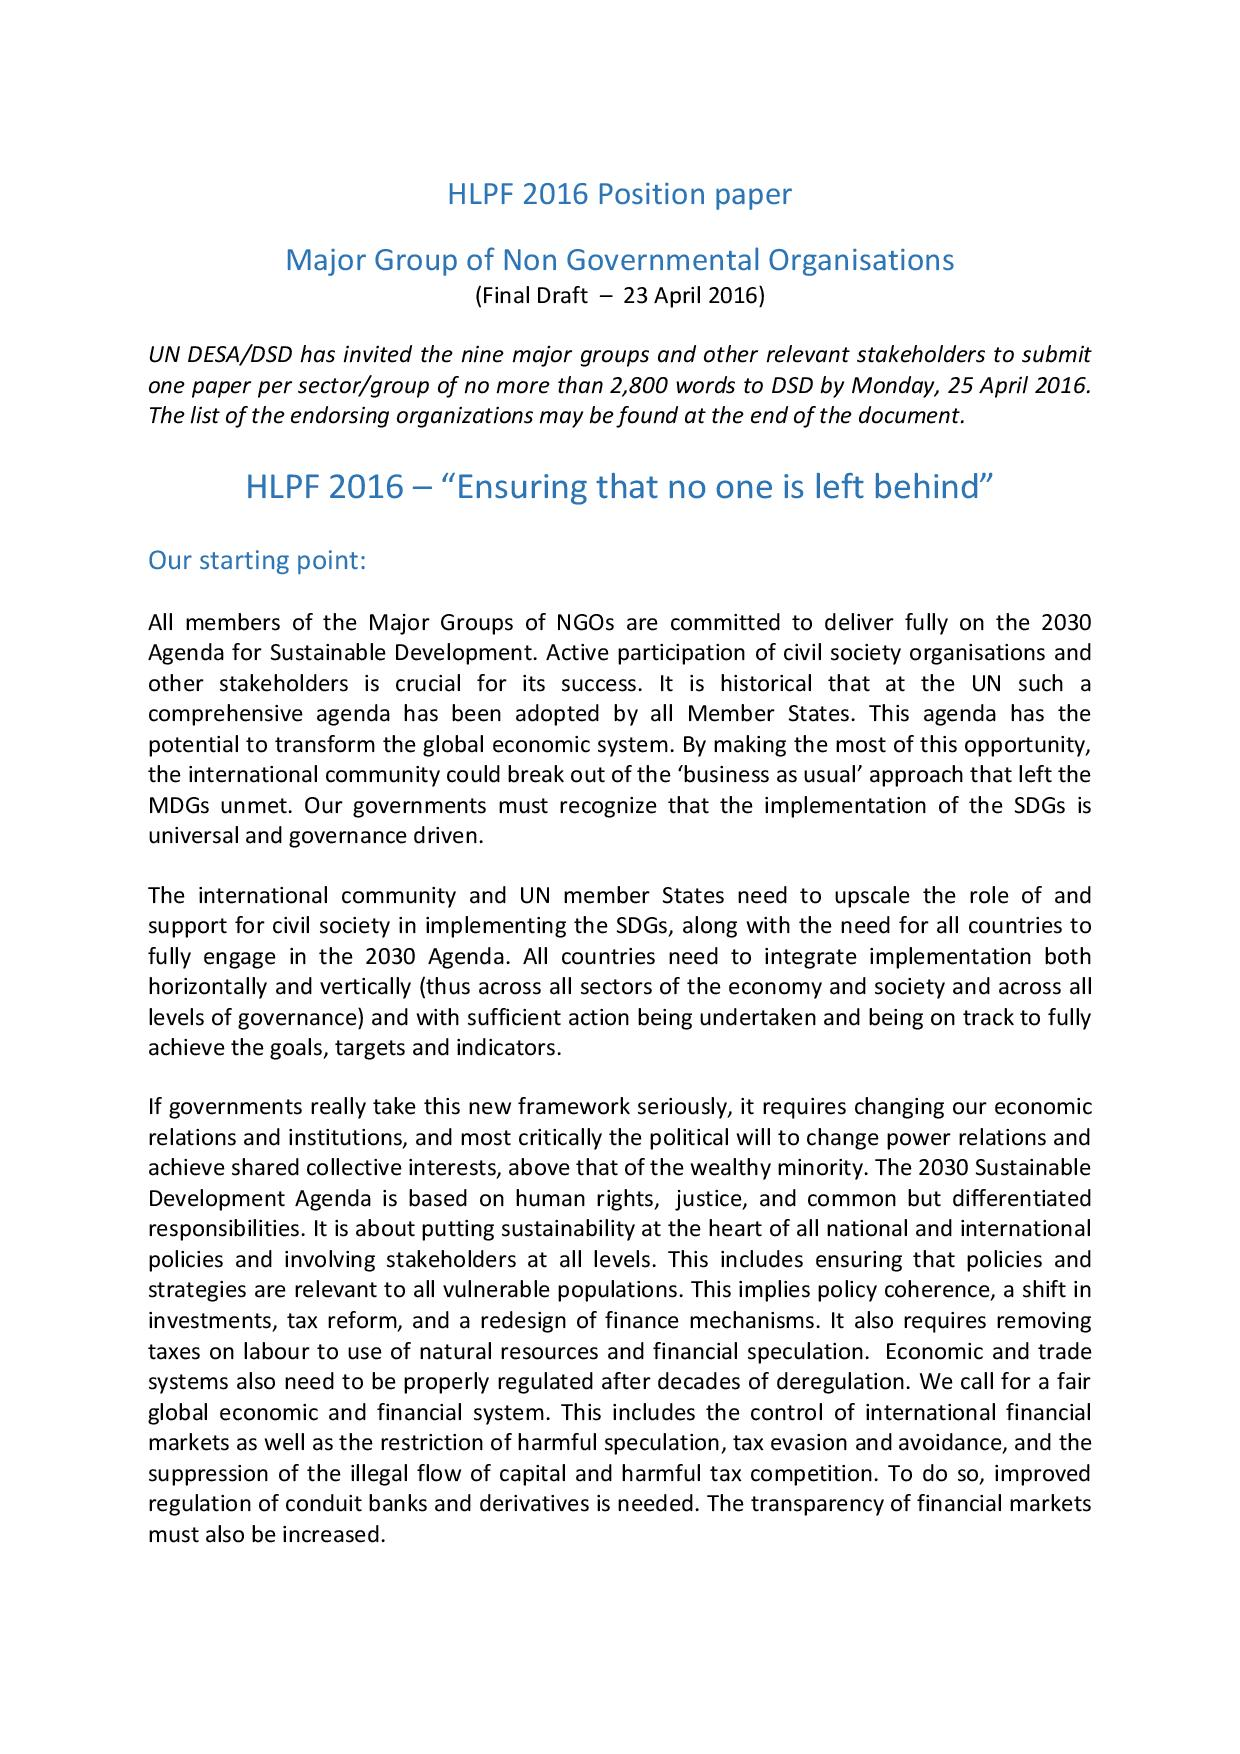 ngo paper 1 civil society paper on budgetary control of funding ngo from the eu budget 1 introduction civil society europe (cse) brings together 28 european networks of civil society organisations.